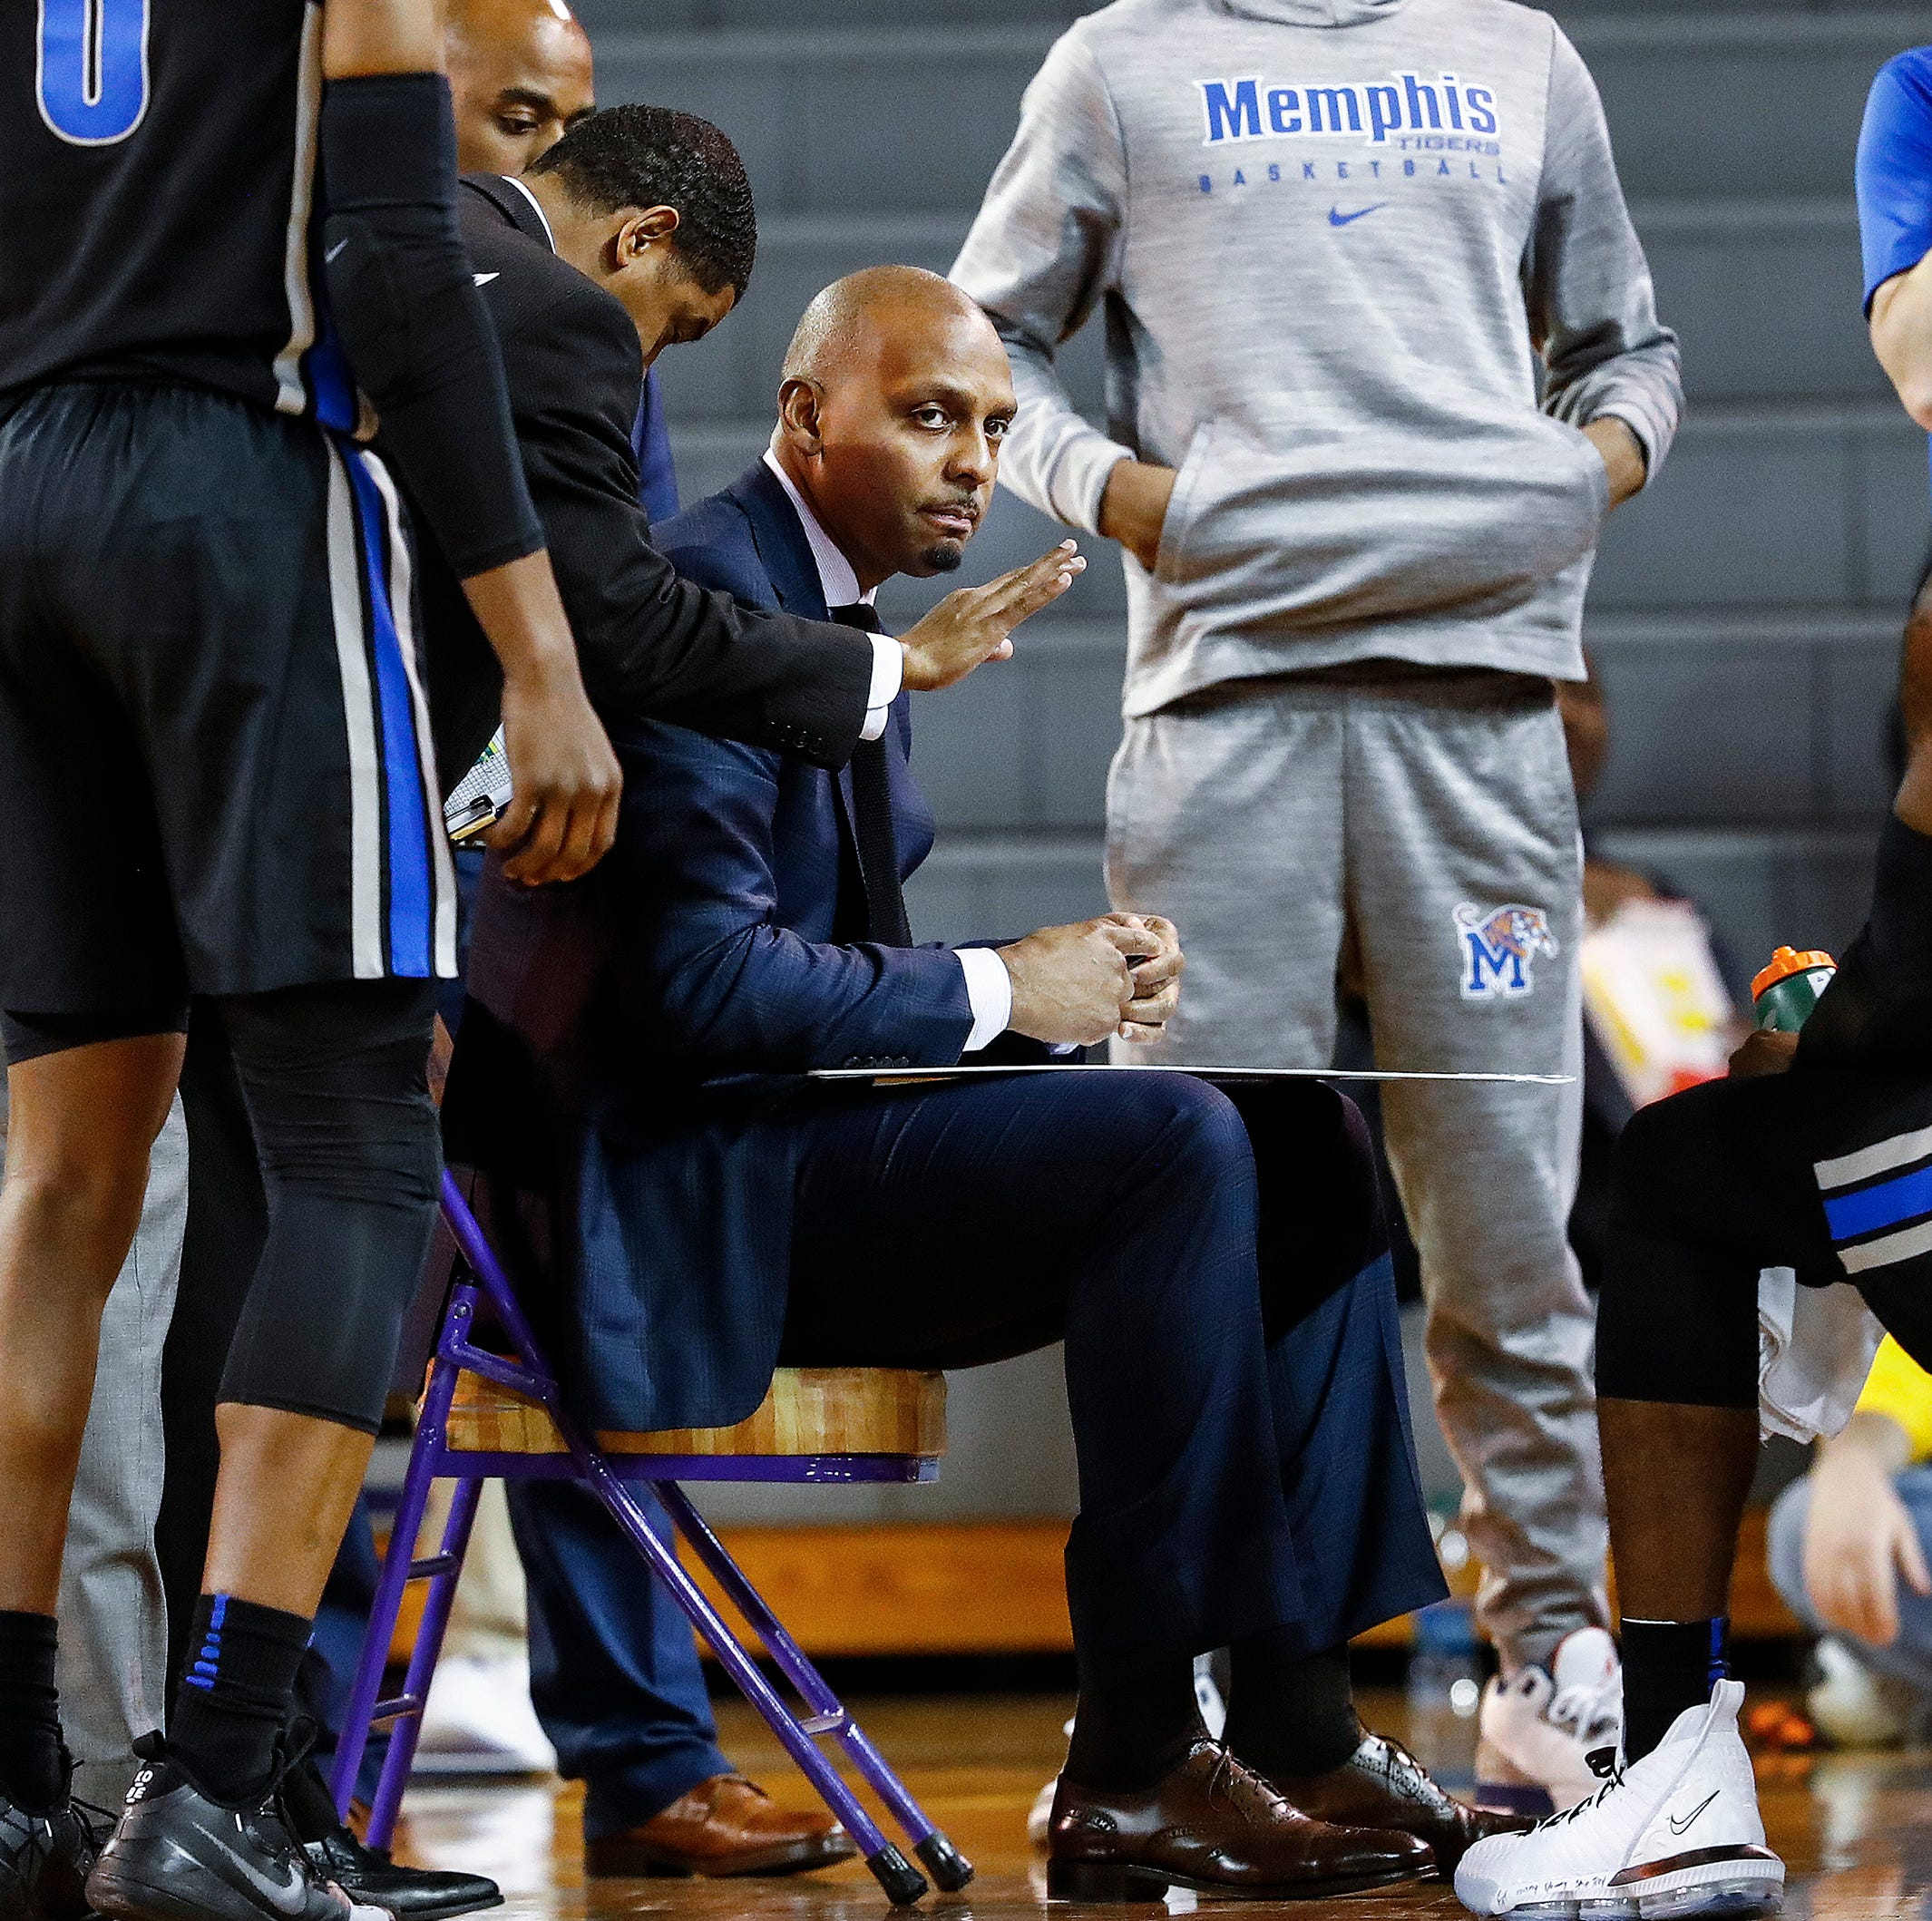 Memphis basketball: How have Penny Hardaway's practices changed this season?